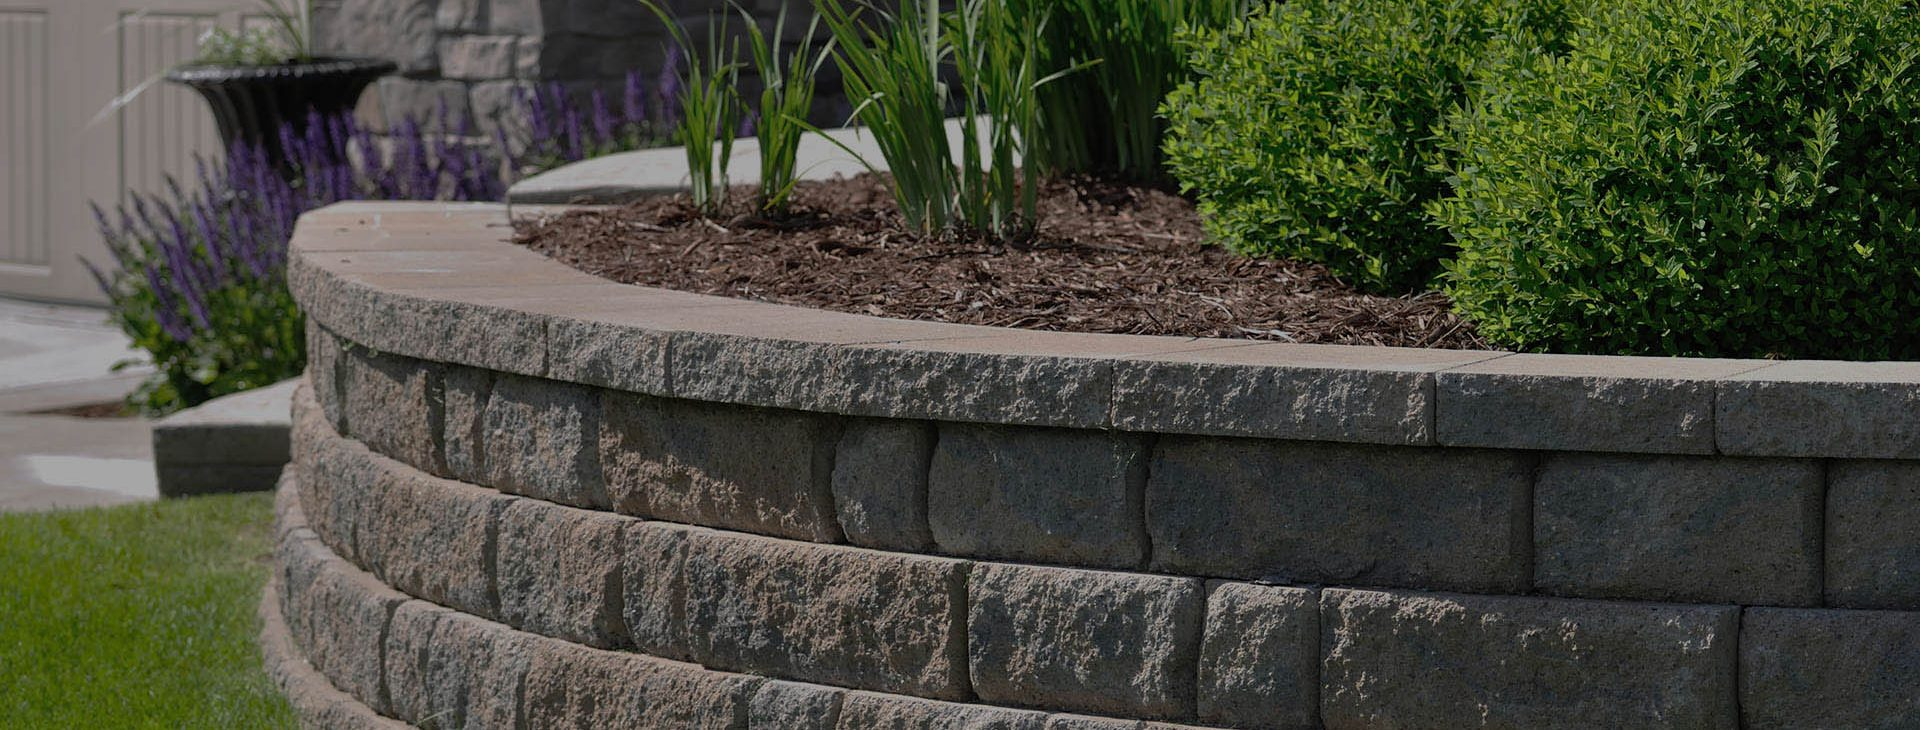 Retaining Walls and